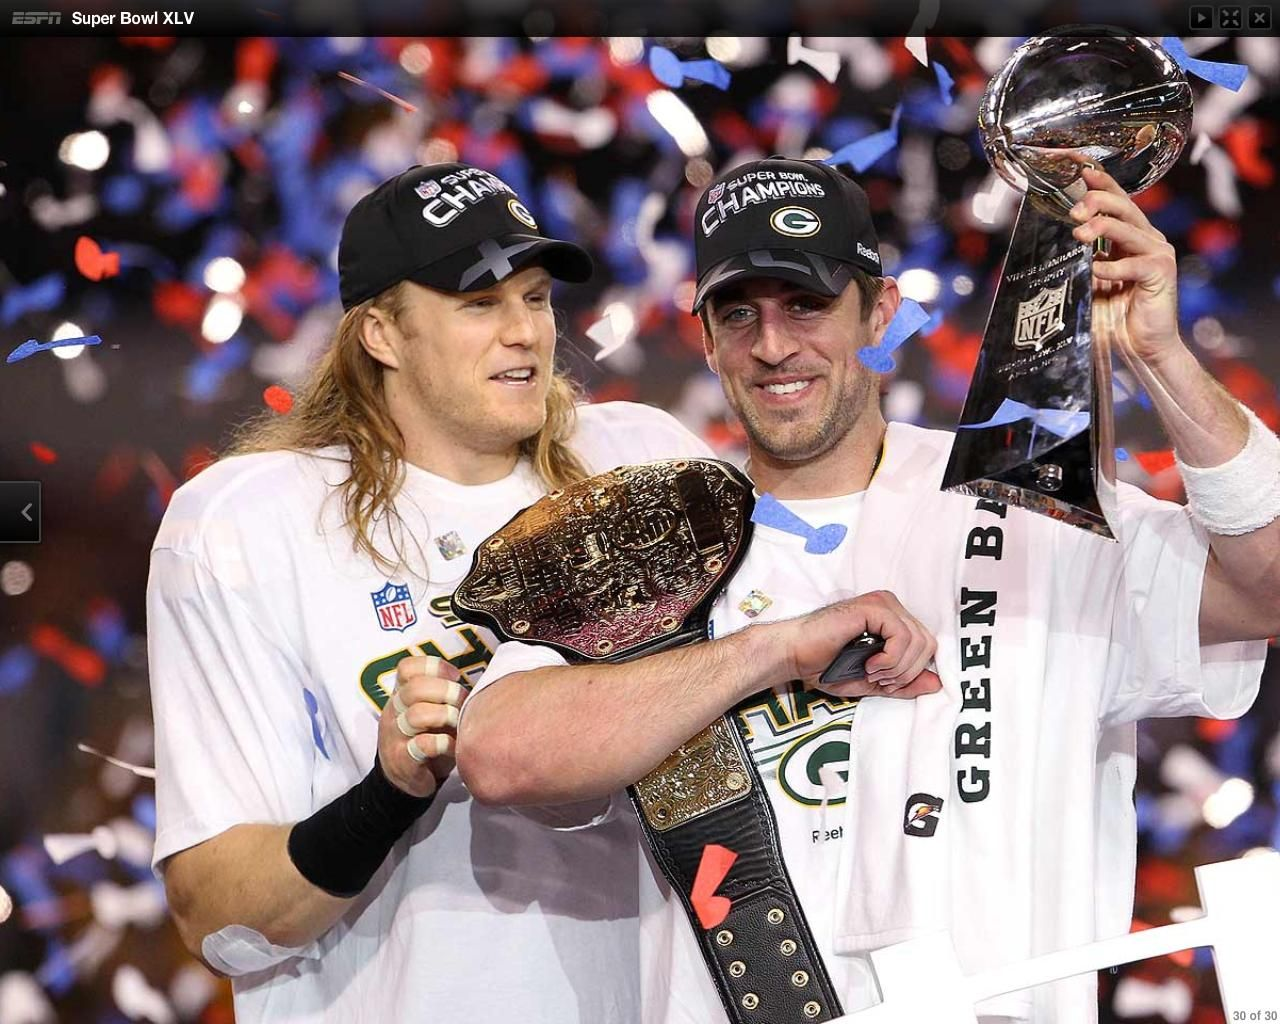 Aaron Rodgers With Championship Belt Superbowl Xlv Green Bay Packers Fans Clay Matthews